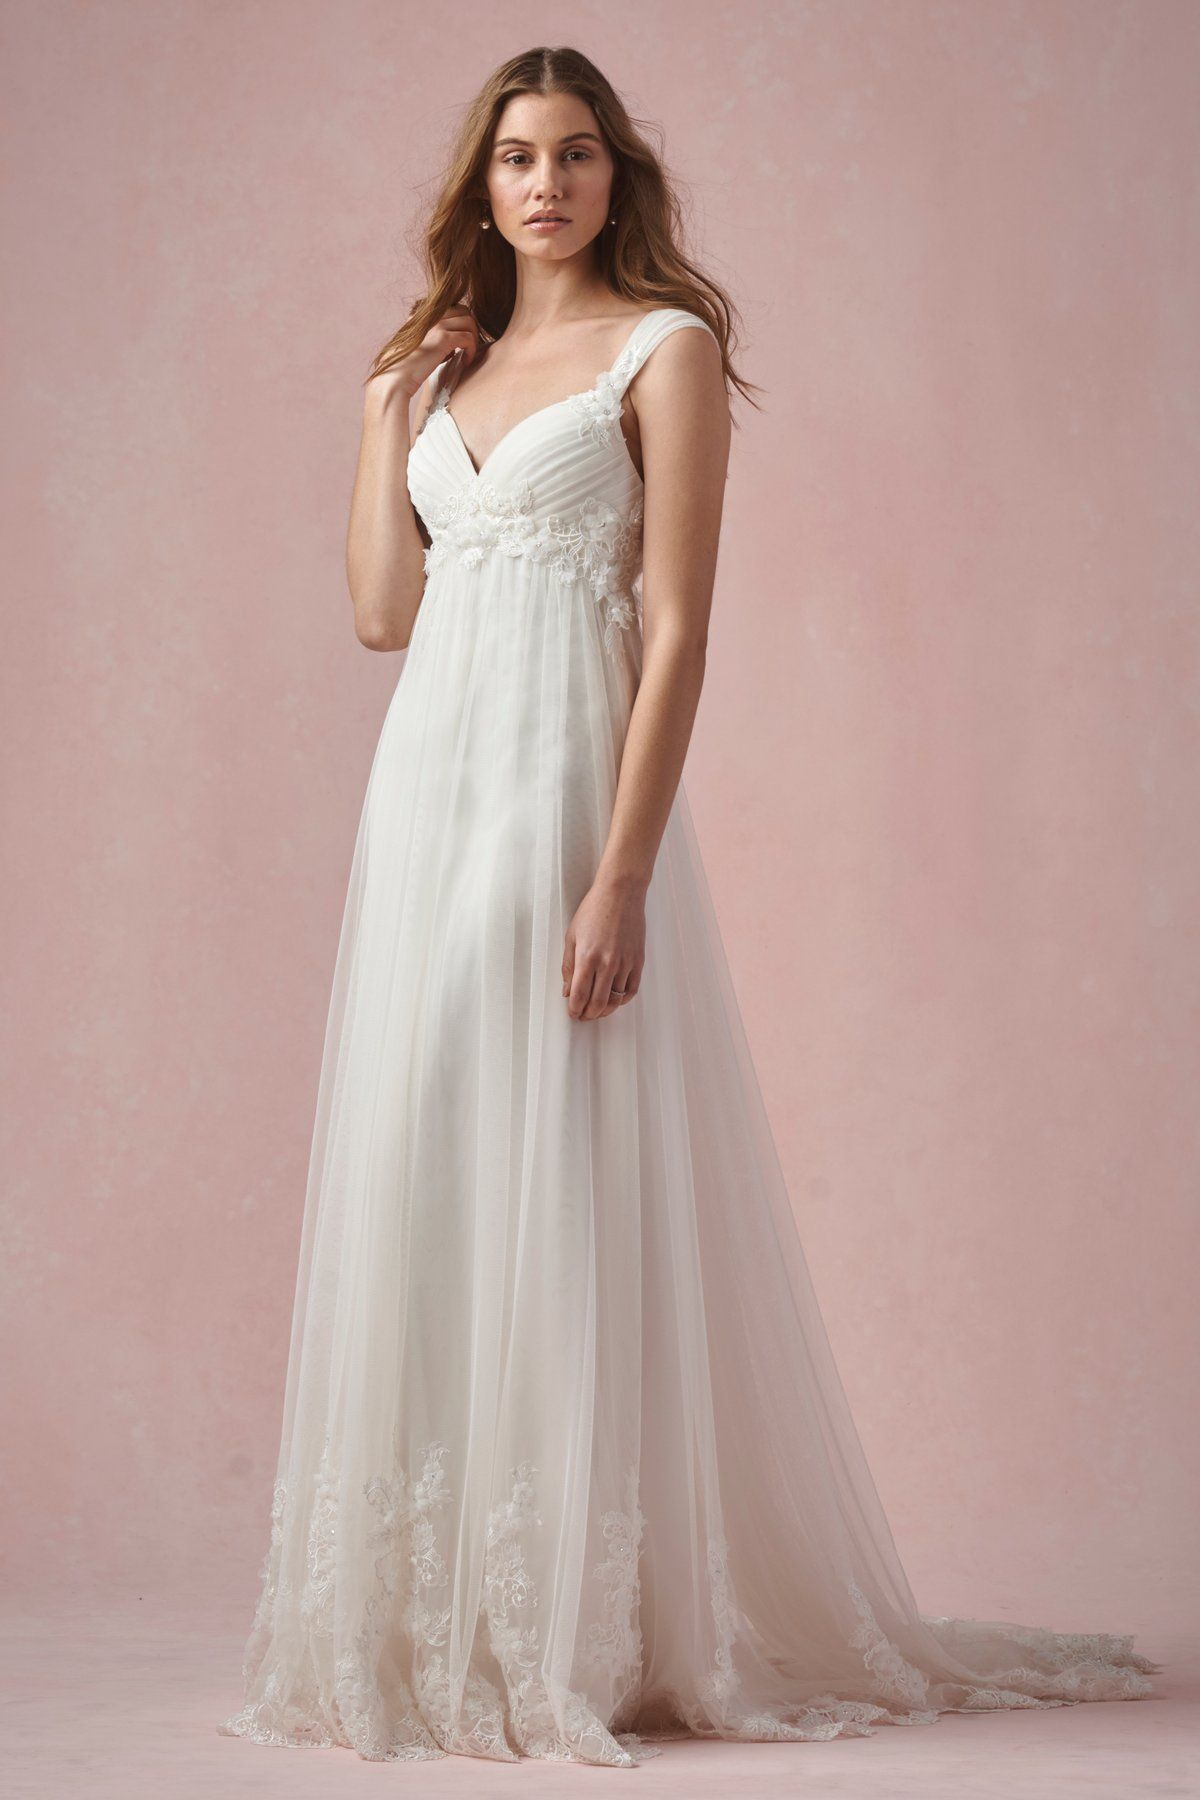 Love marley dress jane wedding stuff pinterest wedding dress